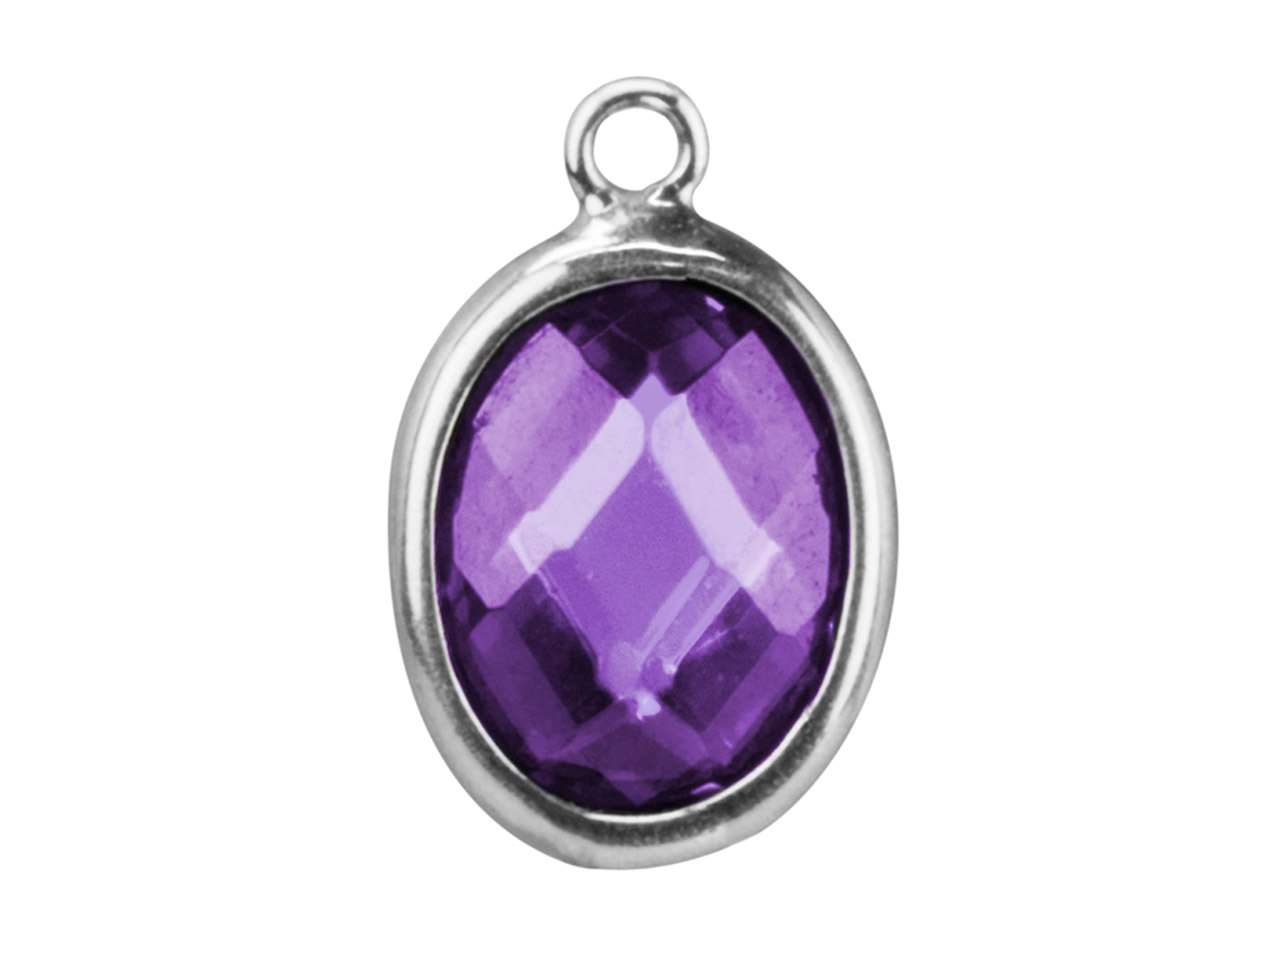 Sterling Silver Oval Drop With     Amethyst Colour Cubic Zirconia     10x8mm